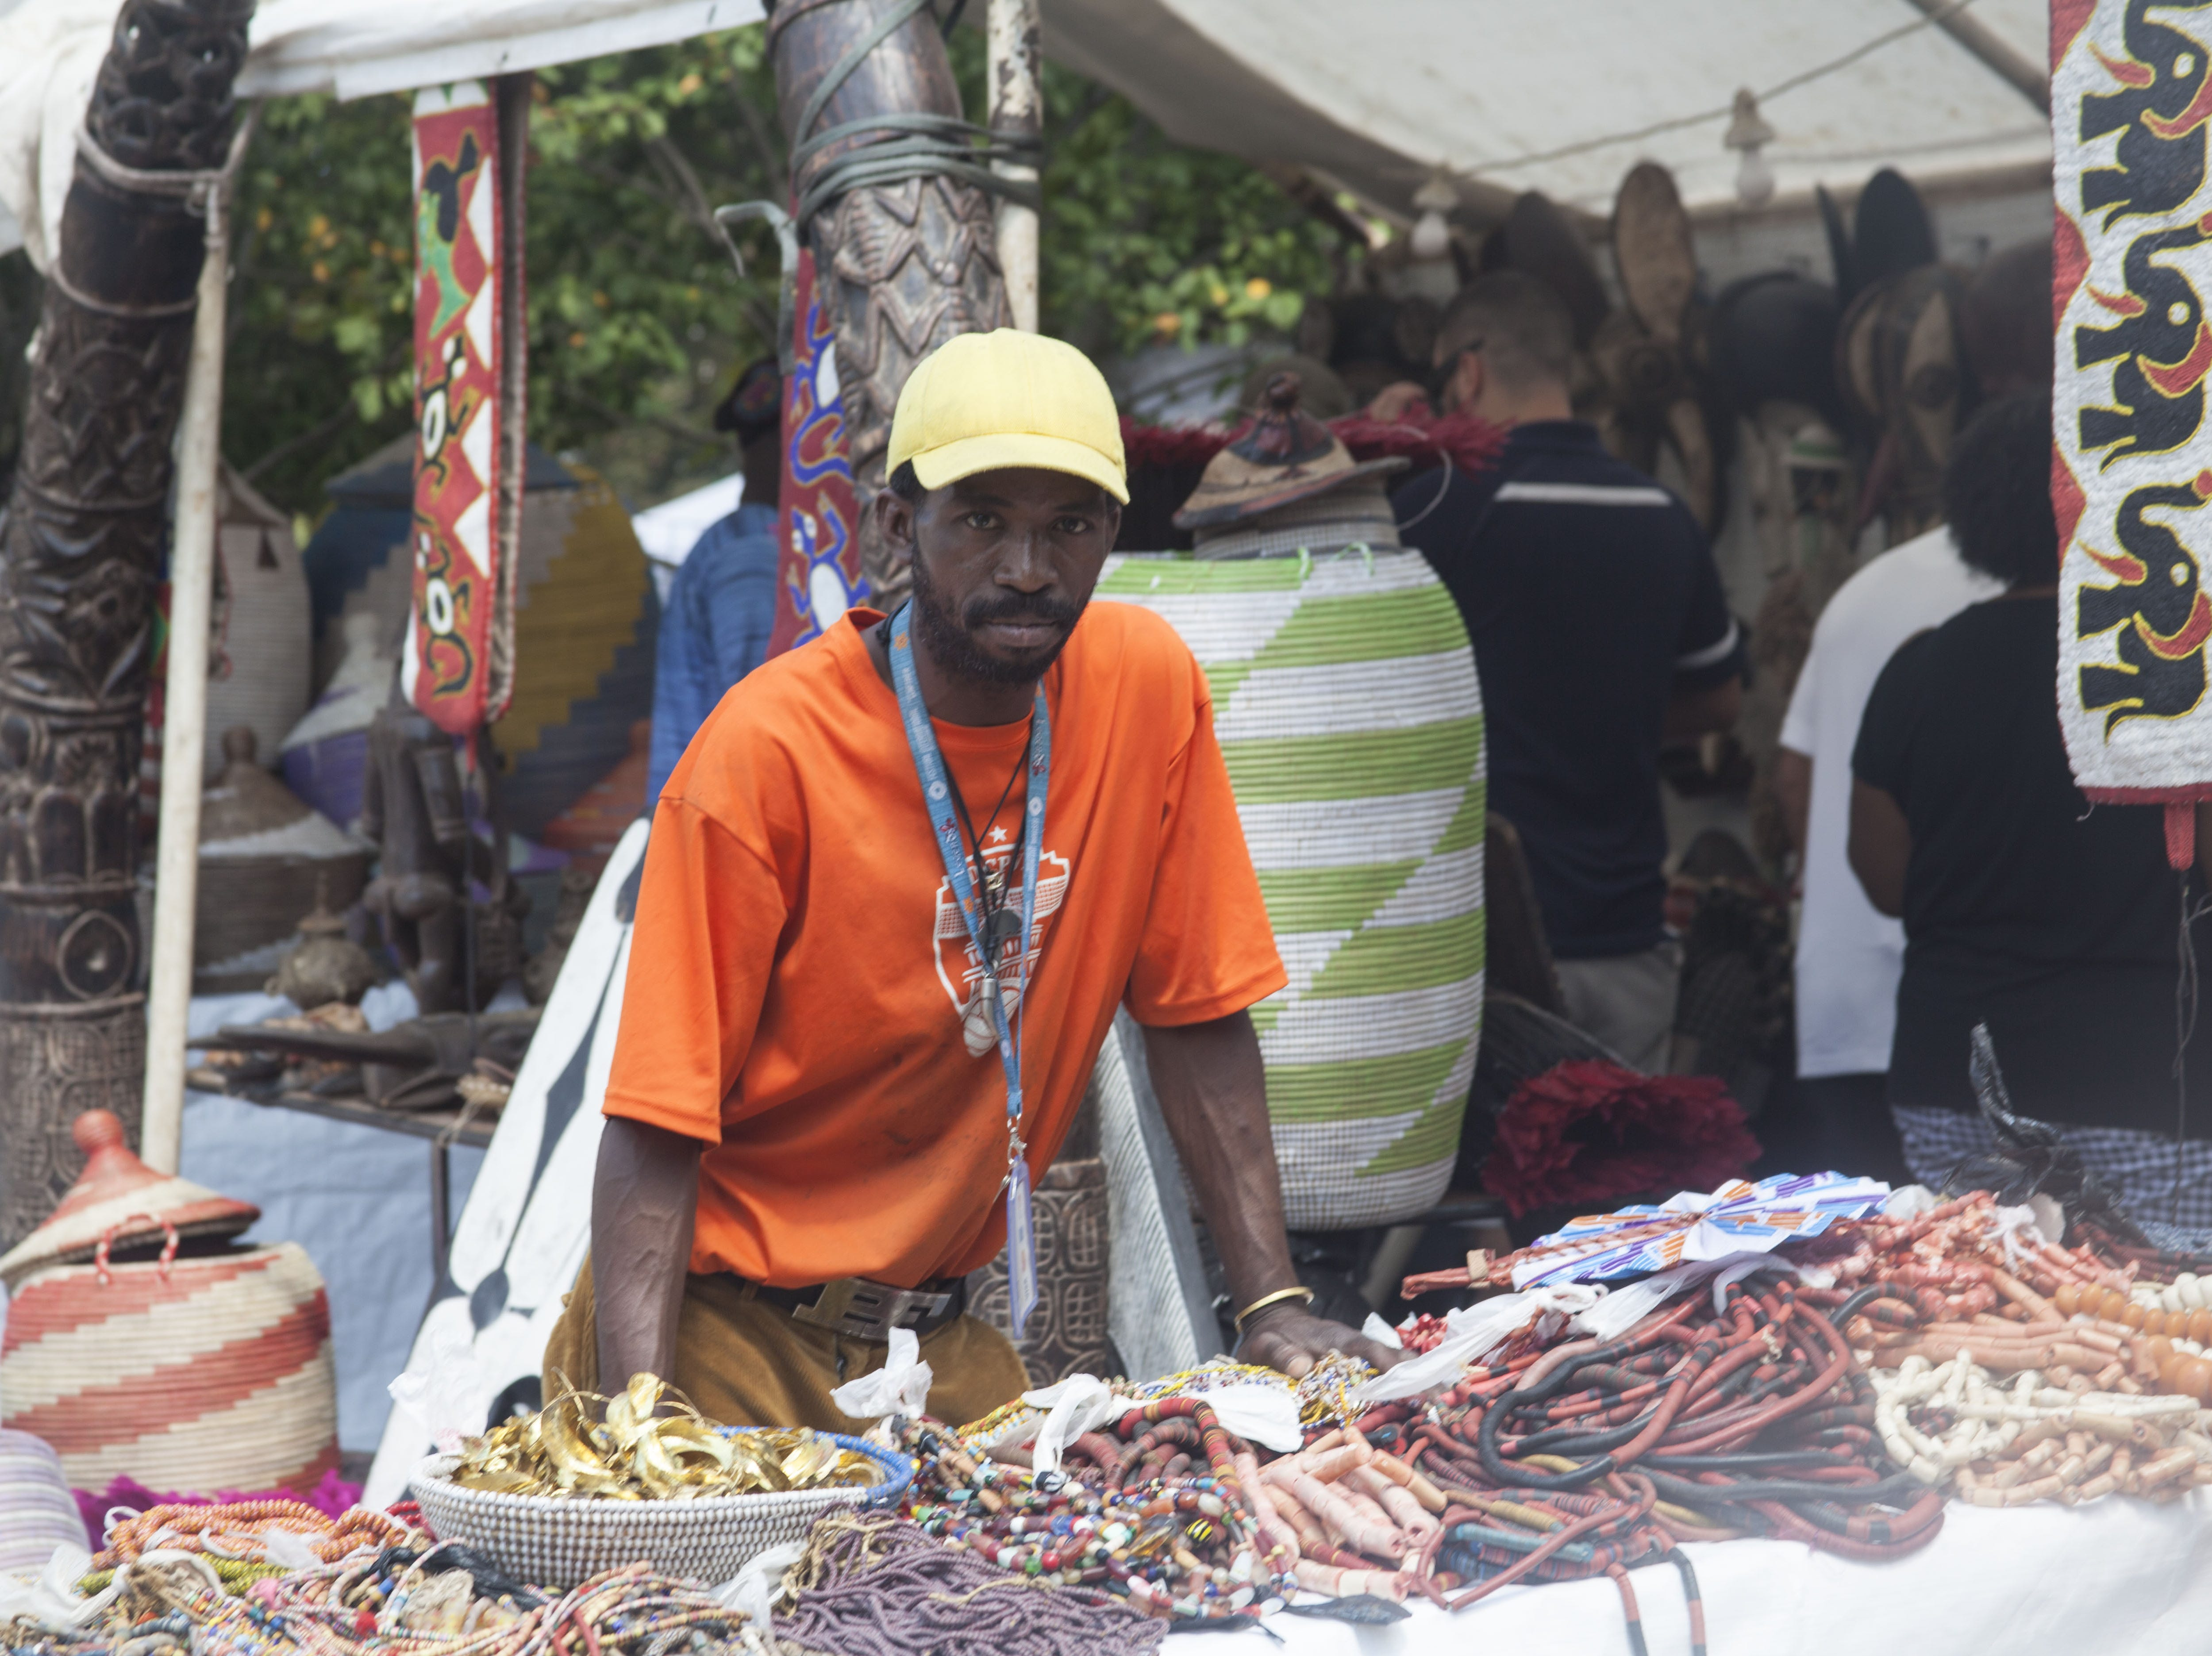 Abdoul Sanogo offers attendees handcrafted items at the 2018 Goombay Festival at the Roger McGuire Green in Pack Square Park on Sept. 8, 2018.